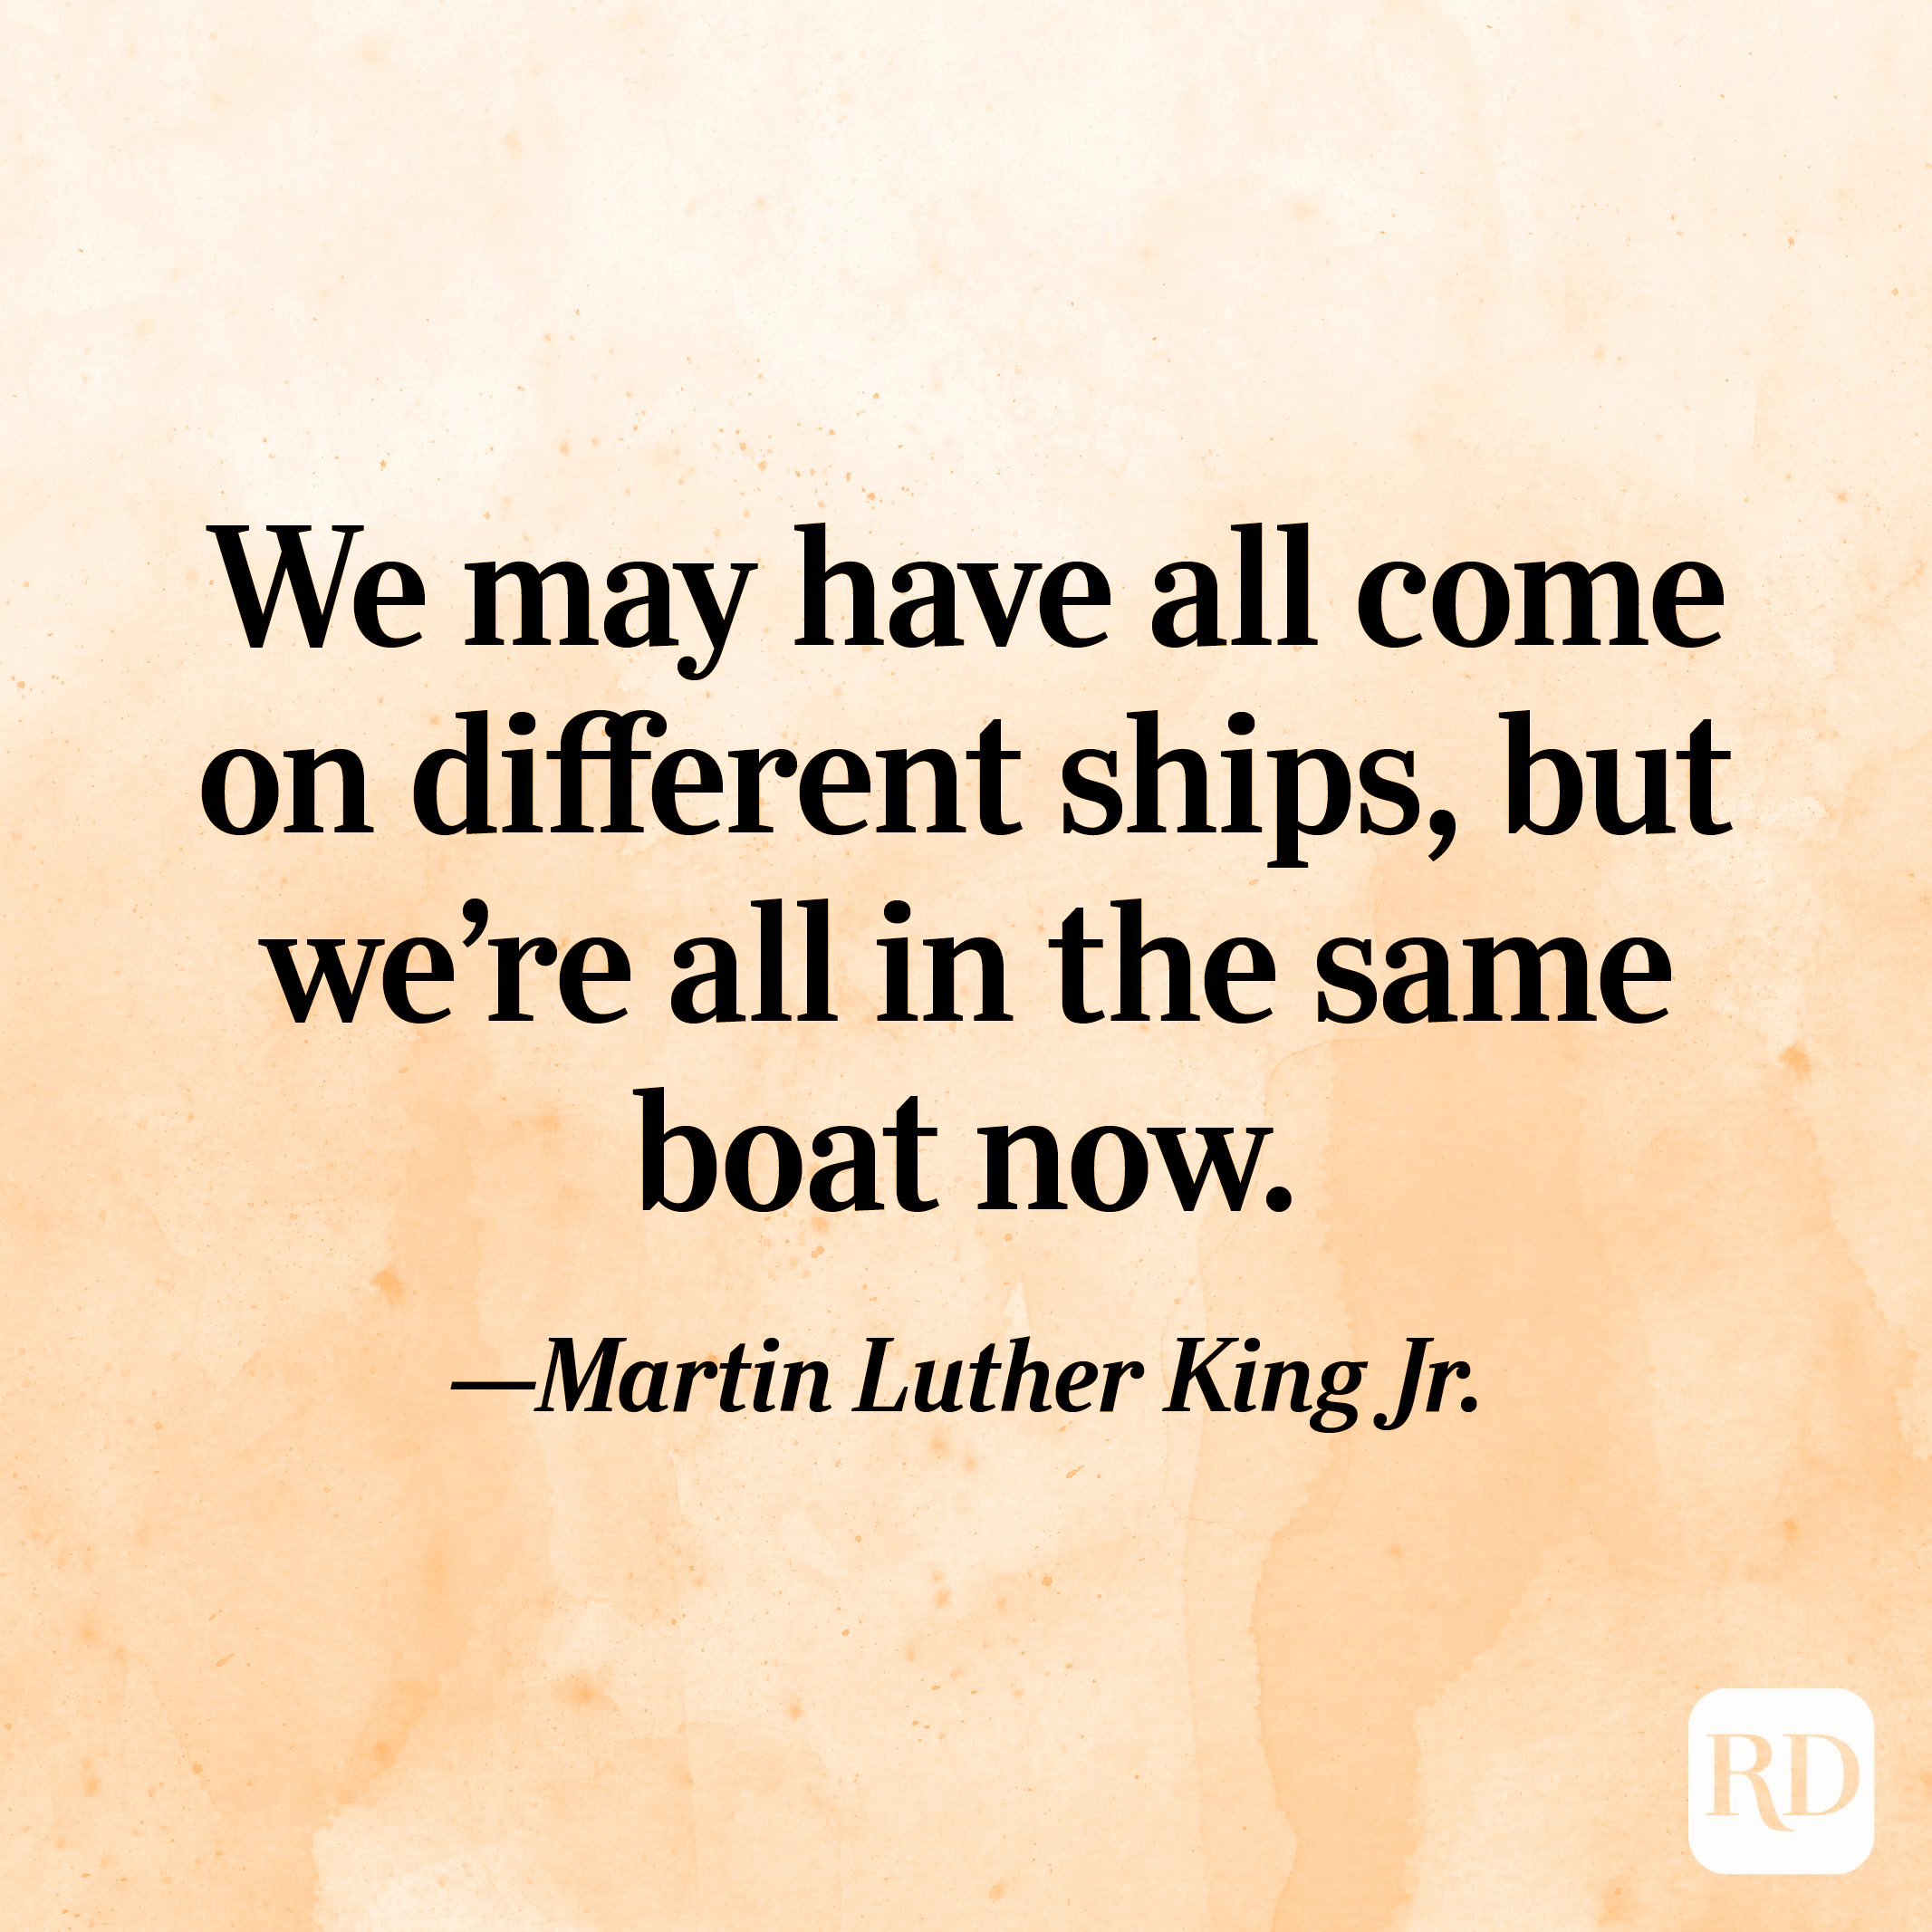 """""""We may have all come on different ships, but we're all in the same boat now."""" —Martin Luther King Jr."""